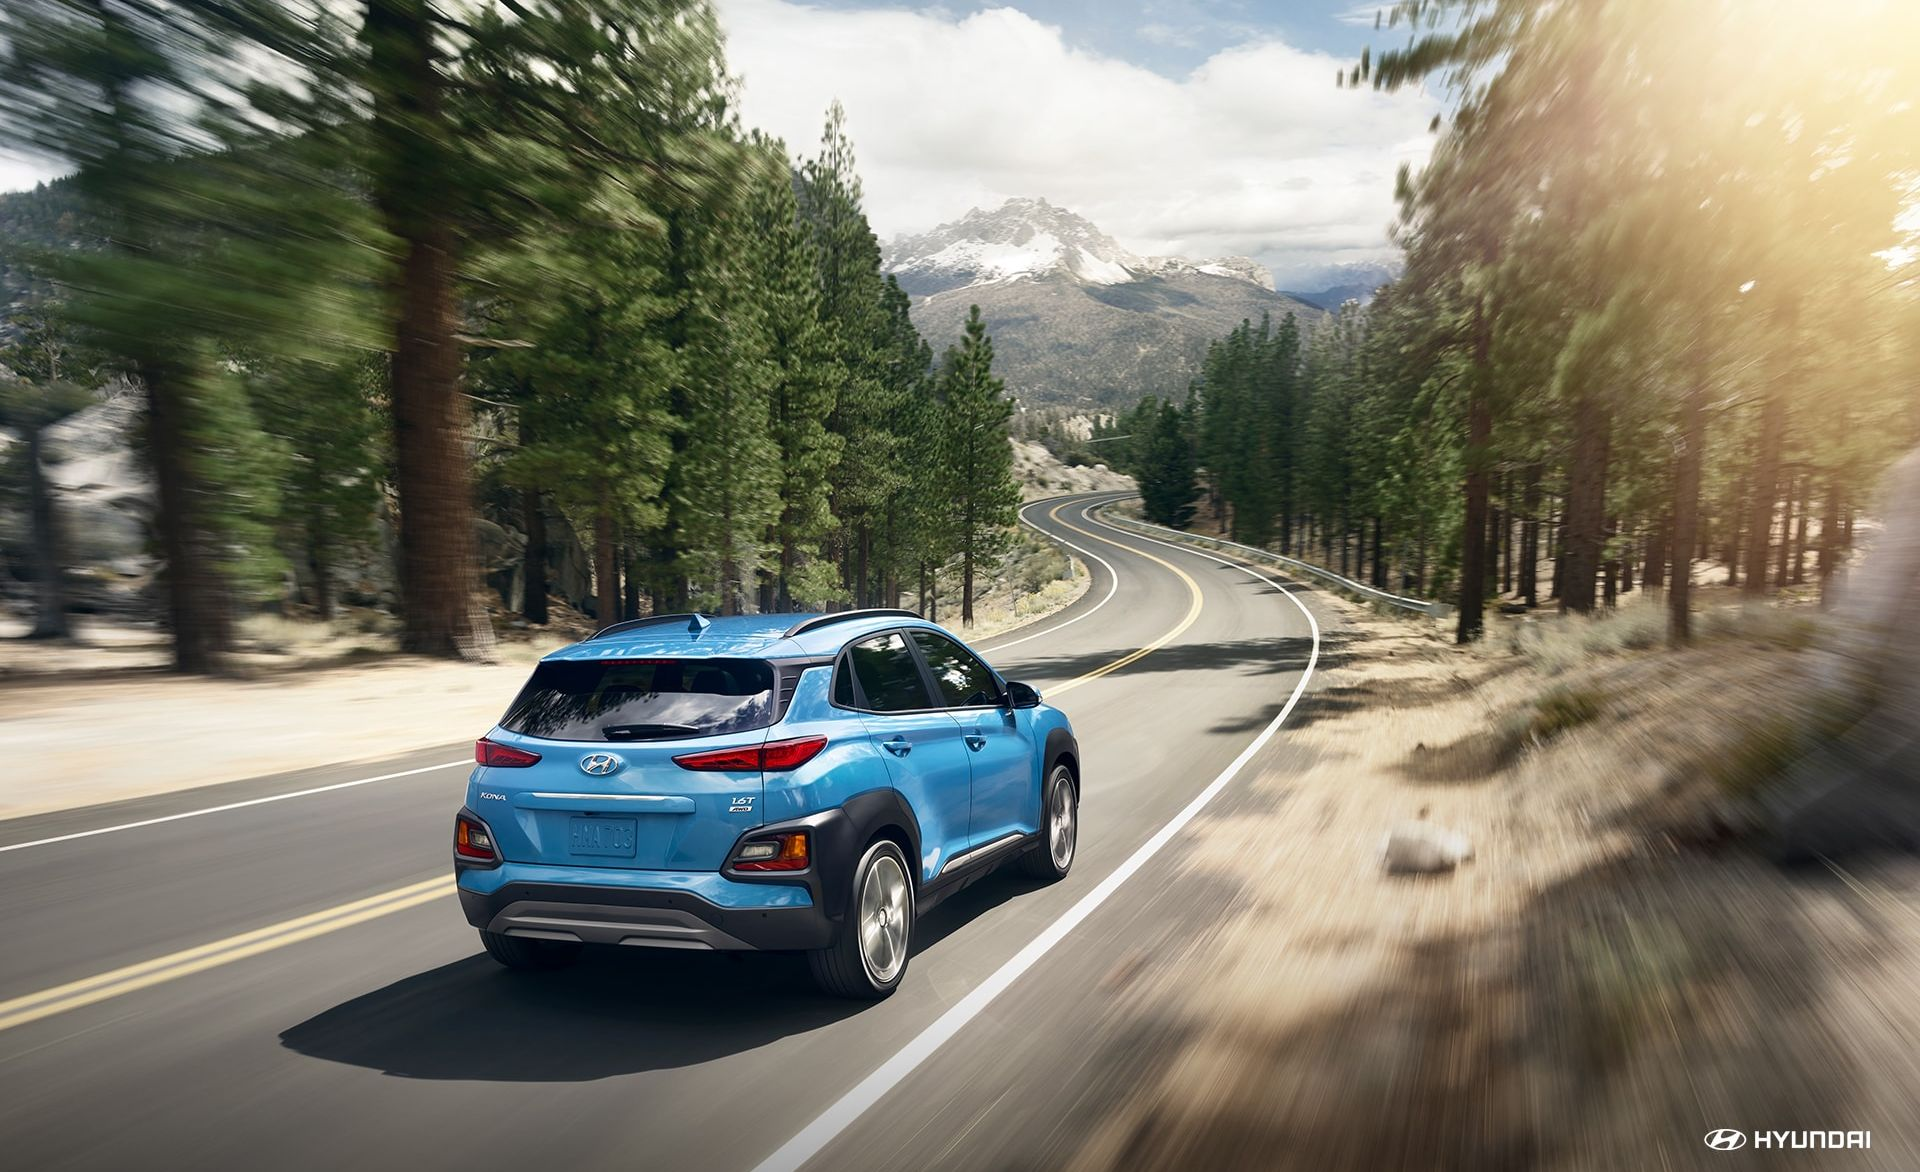 2019 Hyundai Kona Leasing near Washington, DC